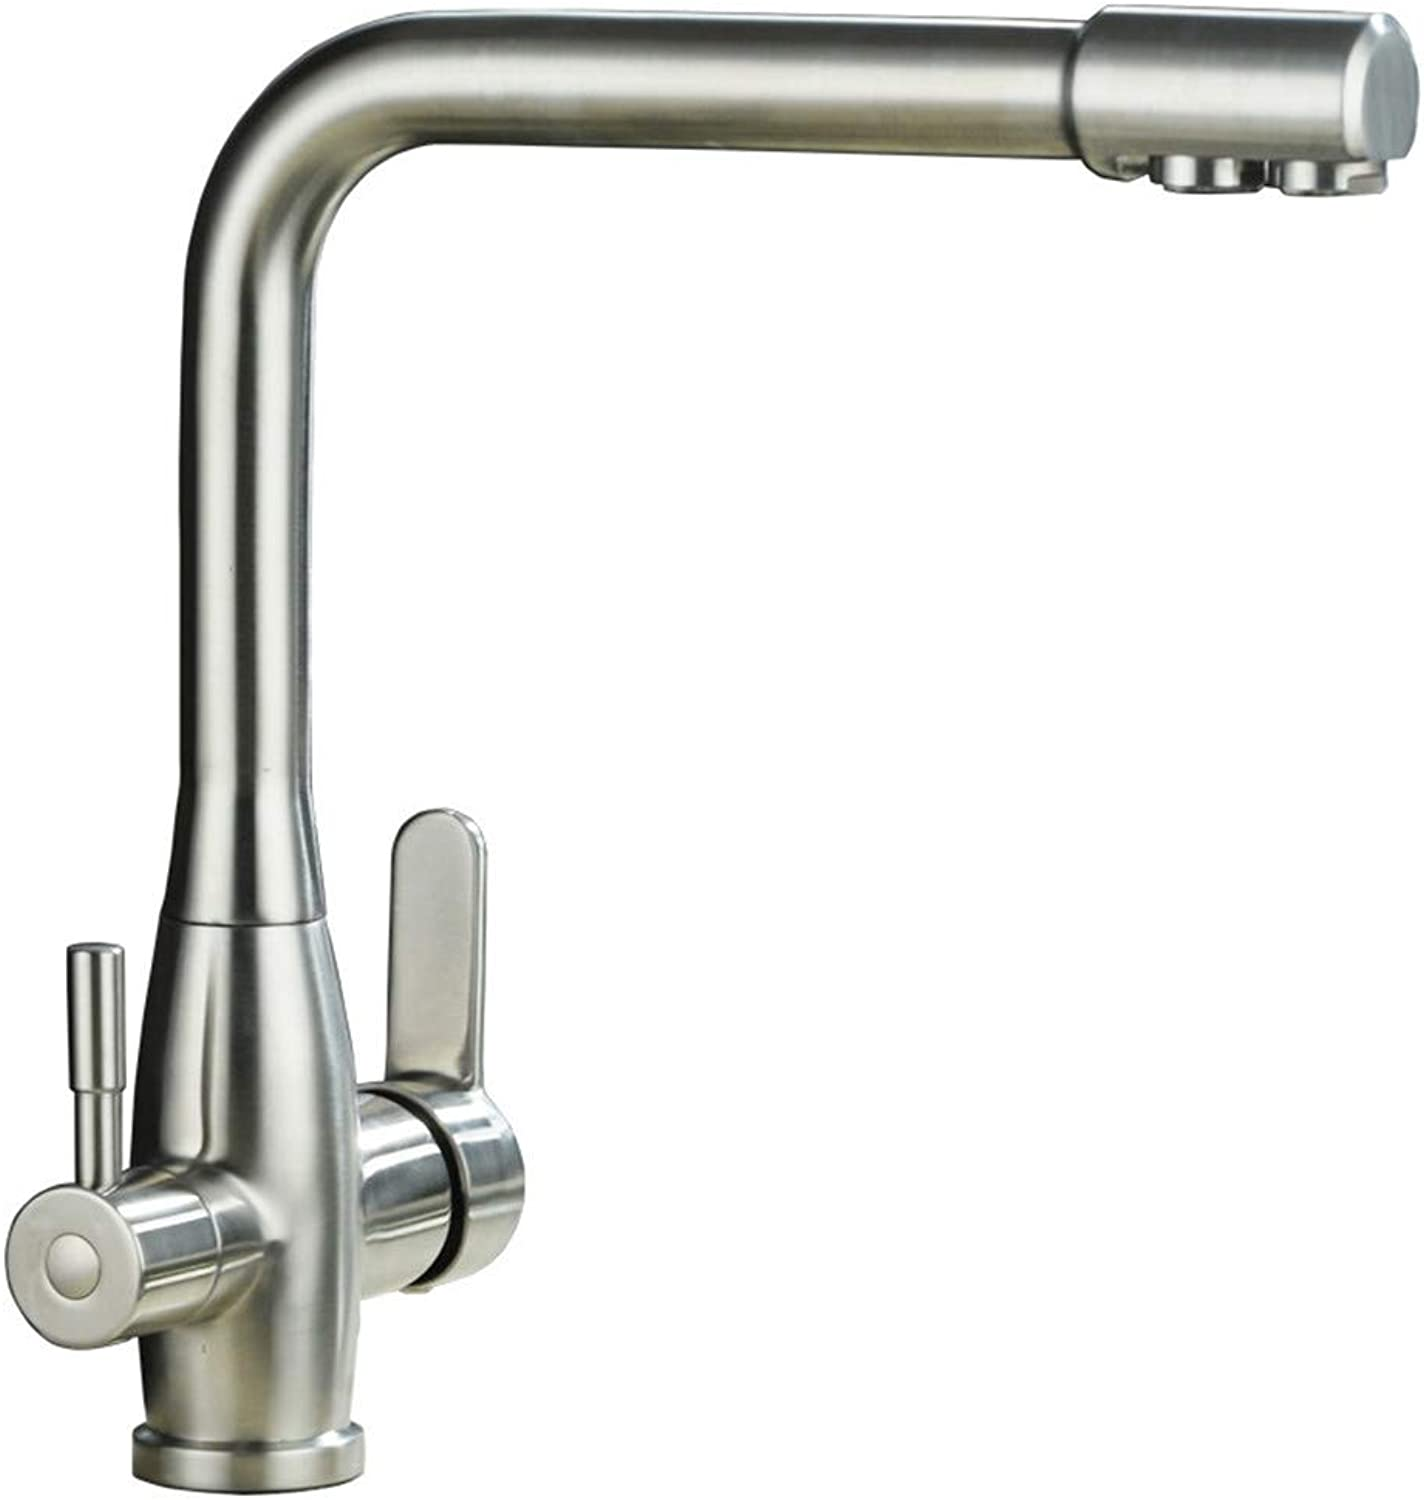 YAWEDA Kitchen Faucet 304 All Stainless Steel Kitchen Sink Faucet Hot Water Mixer Pure Faucet 3 Way with Filter Double Handle